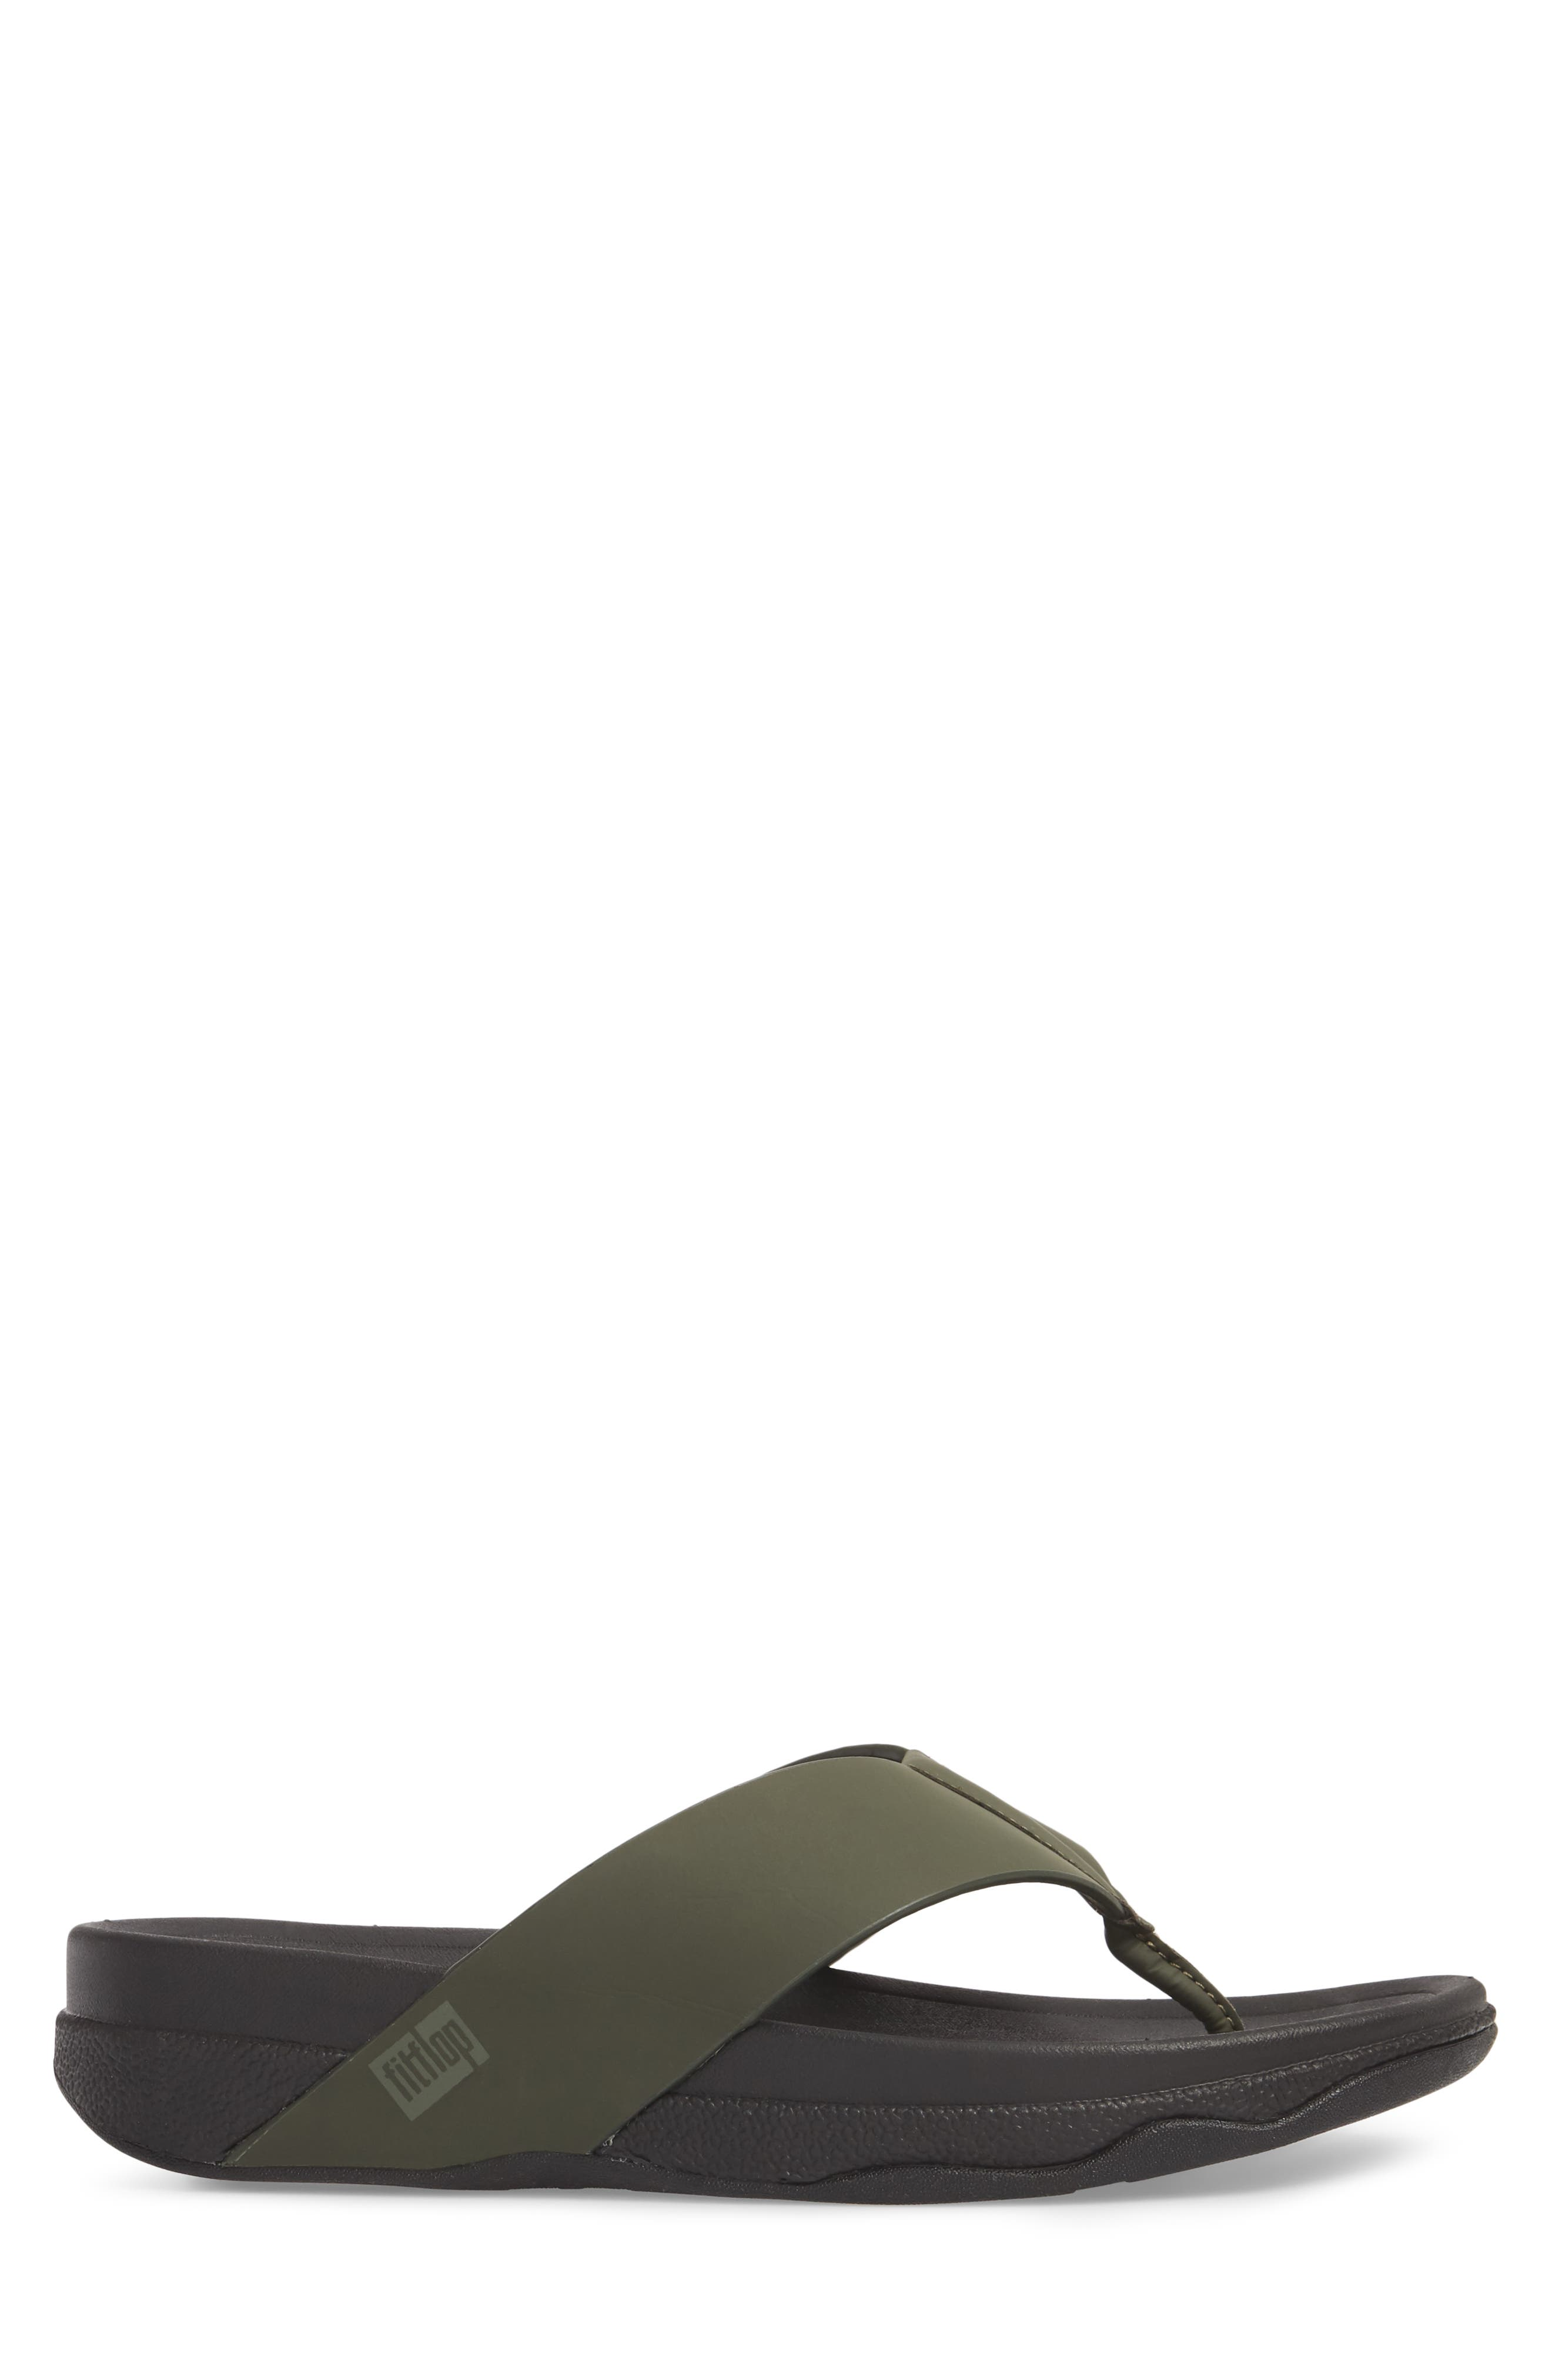 Surfer Toe Flip Flop,                             Alternate thumbnail 3, color,                             Camouflage Green